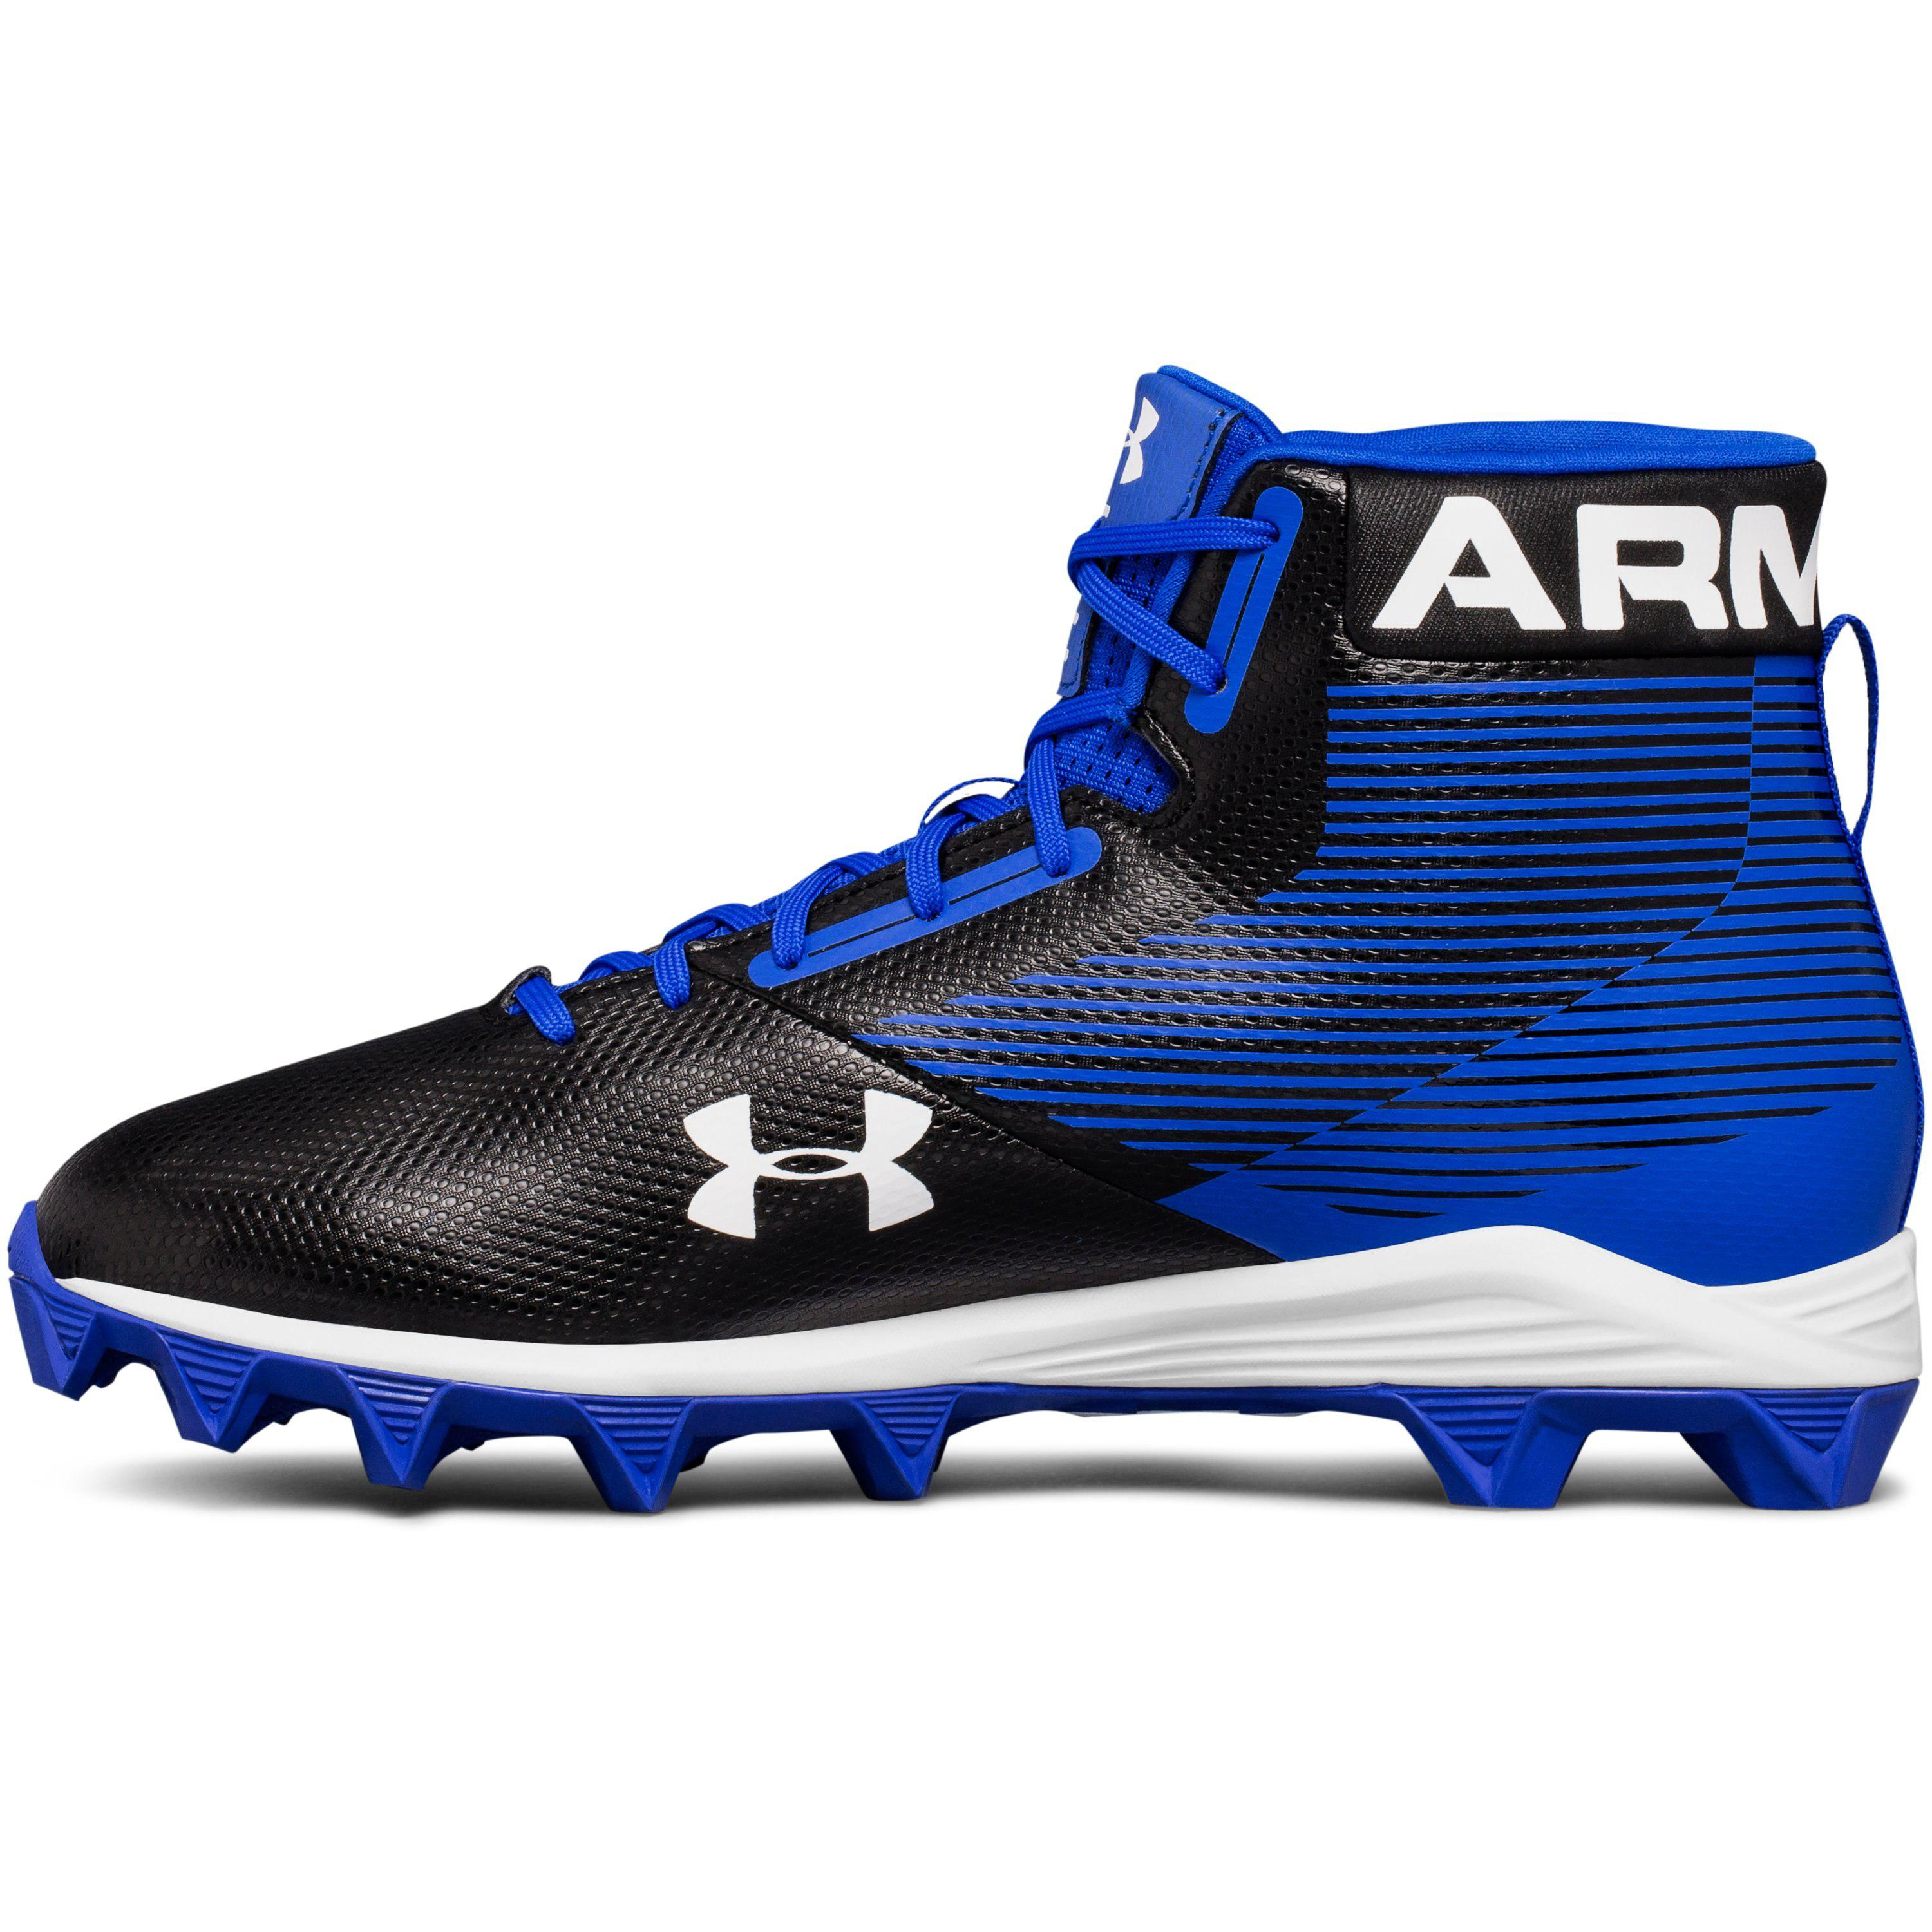 7982a713b27 Under Armour Men s Ua Hammertm Mid Rubber Molded Football Cleats in ...